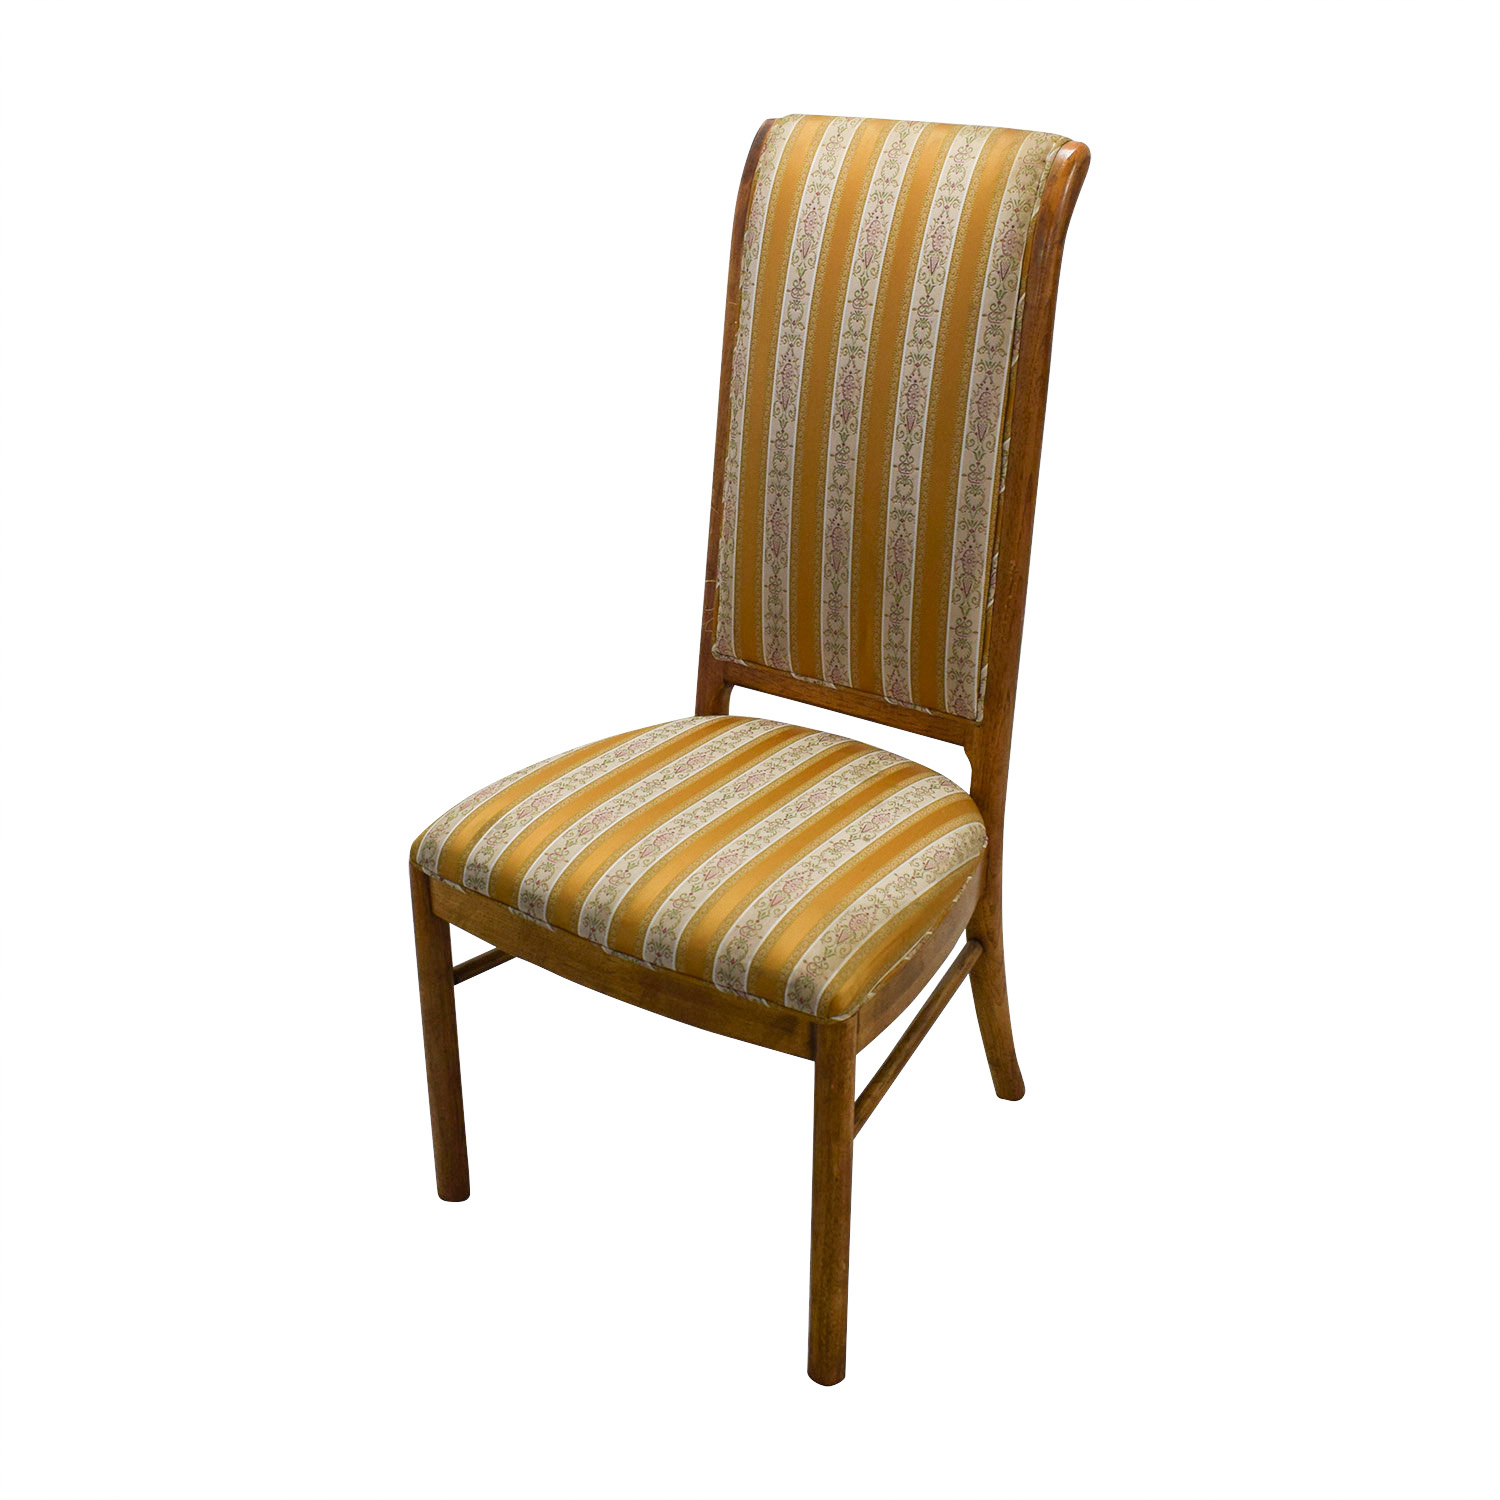 Drexel Heritage Drexel Heritage Dining Chairs used